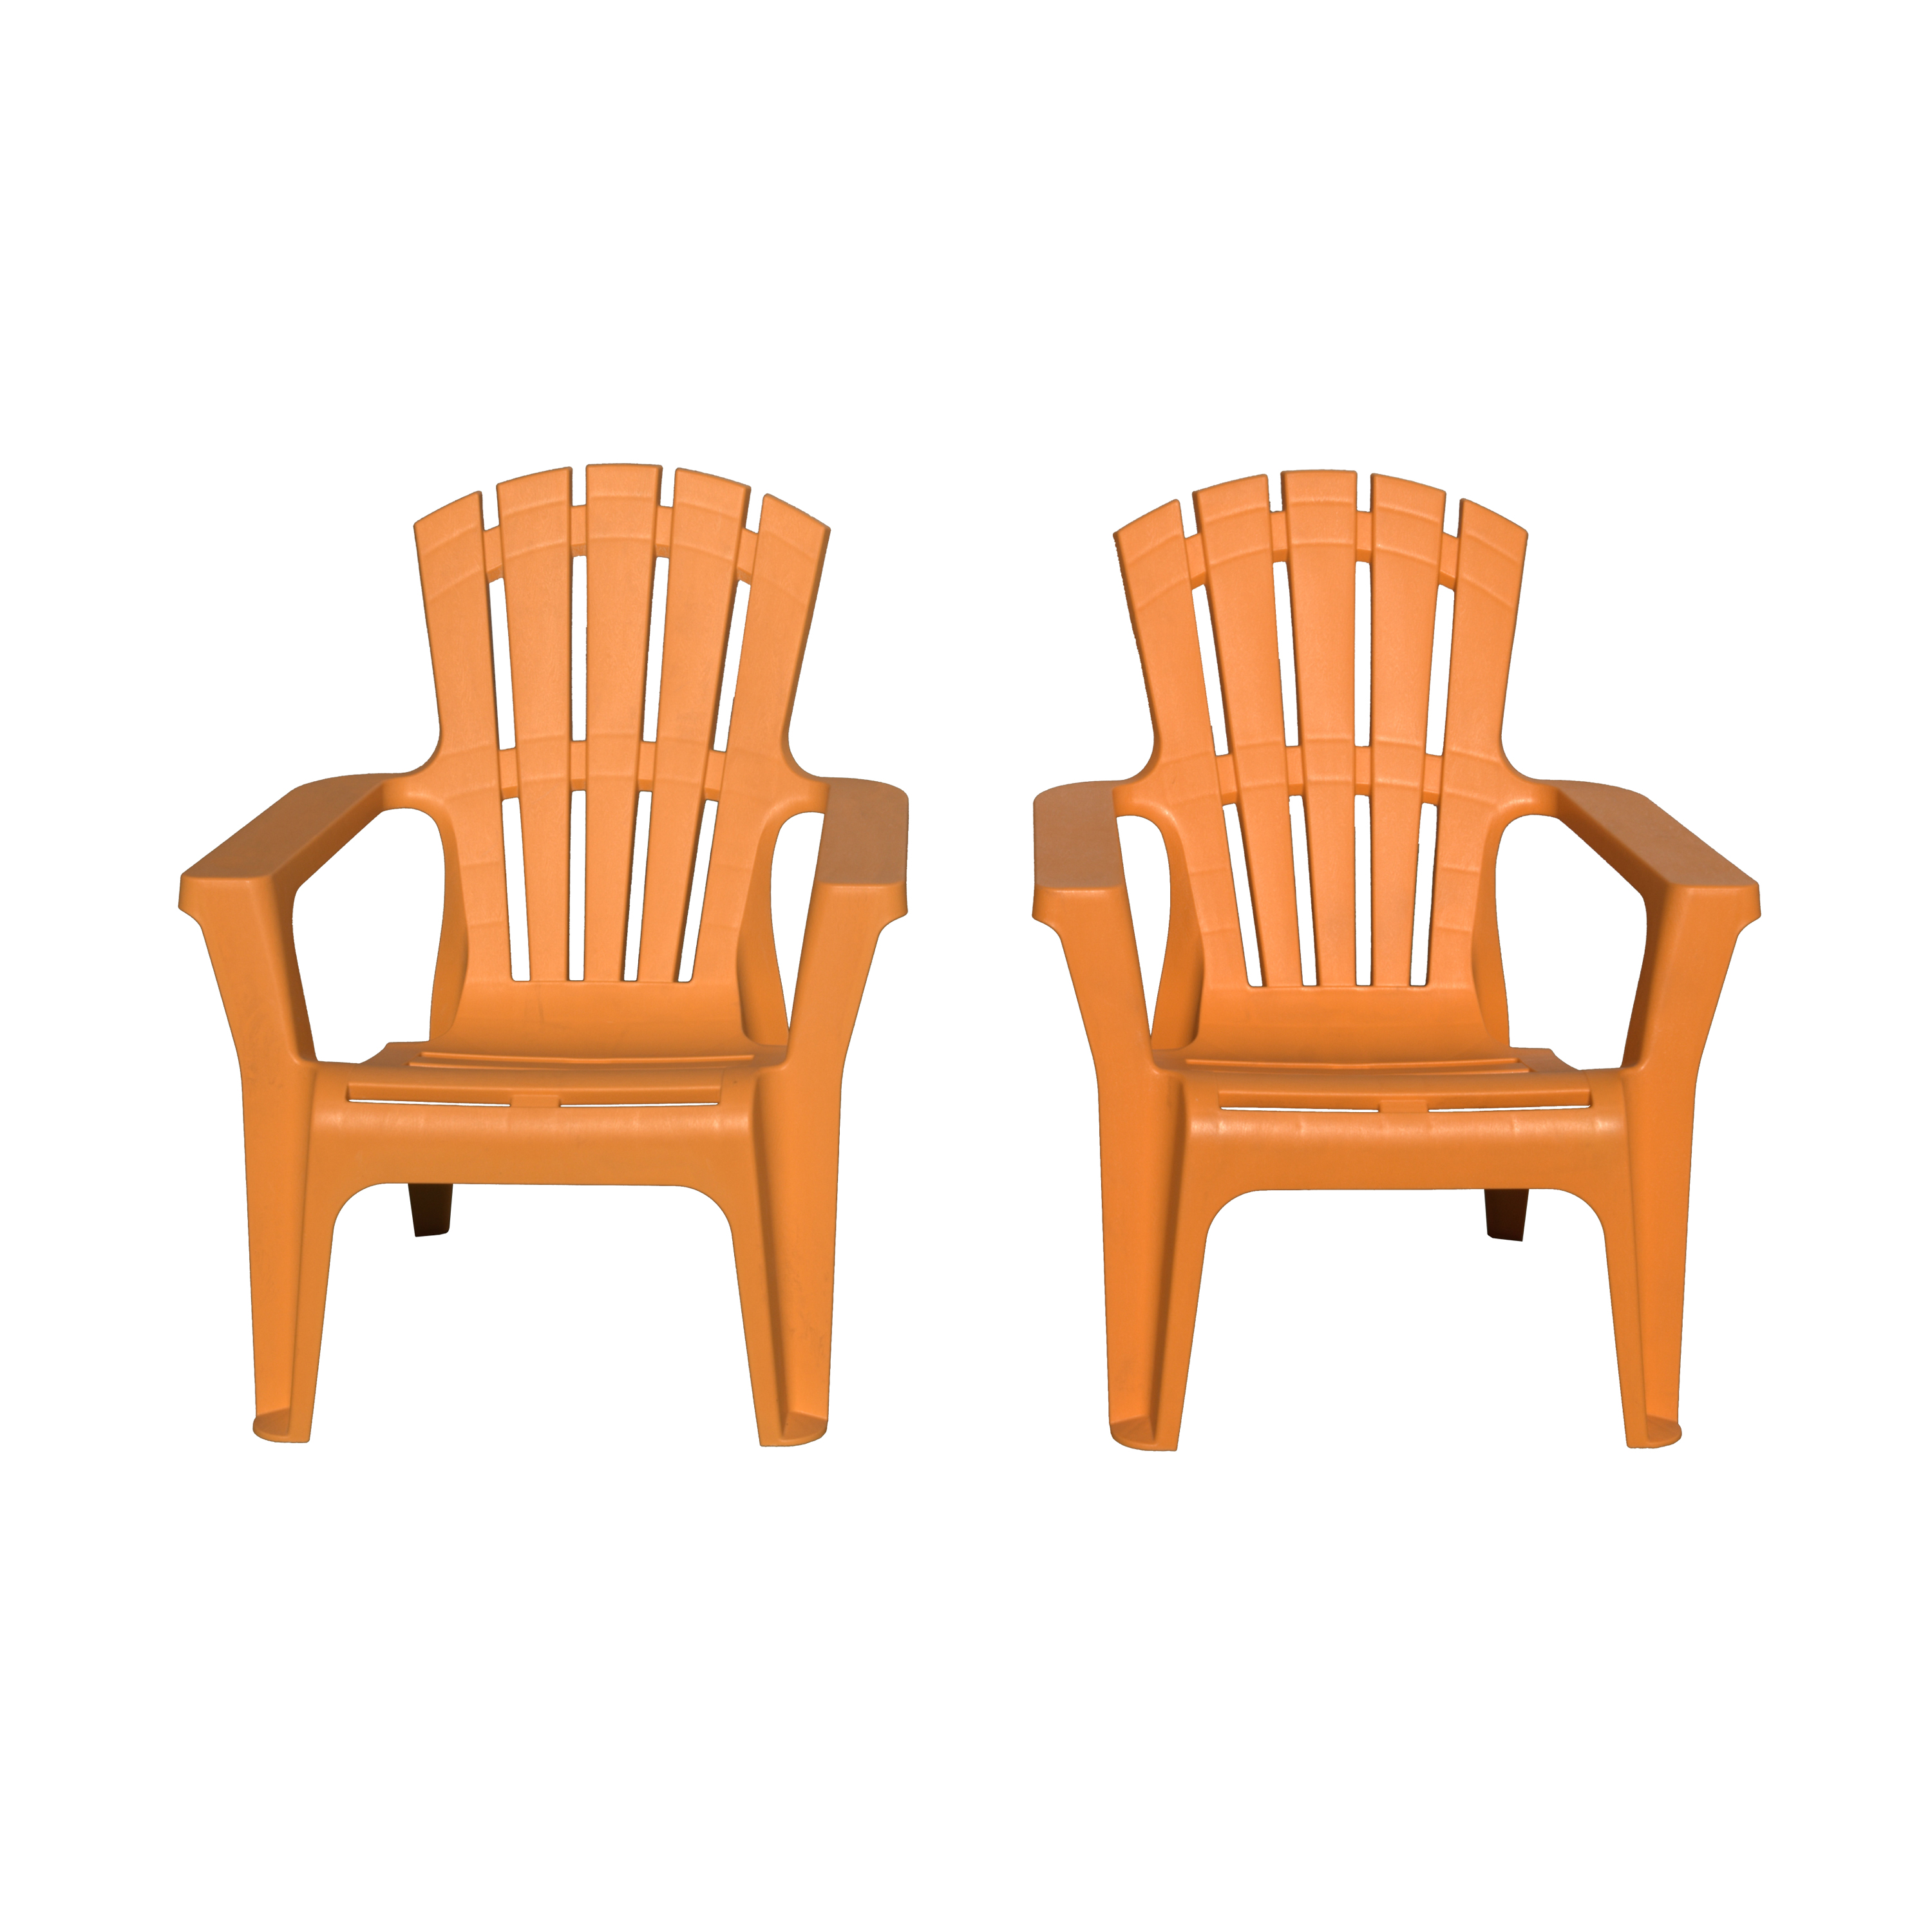 Superieur Stackable Adirondack Chairs In Orange (Set Of 2)